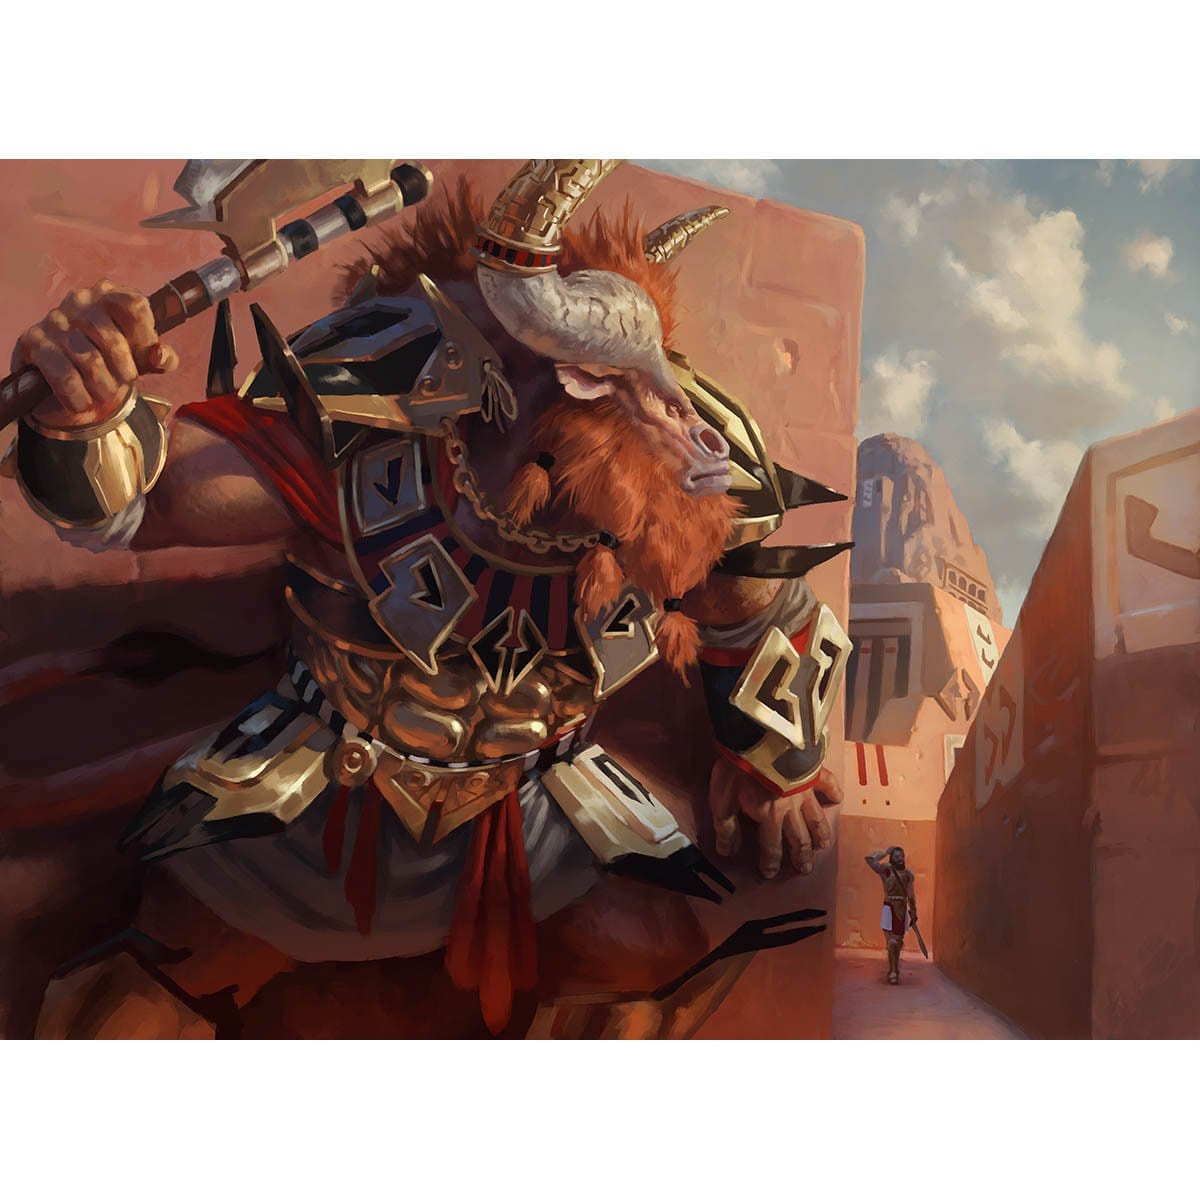 Skophos Maze-Warden Print - Print - Original Magic Art - Accessories for Magic the Gathering and other card games